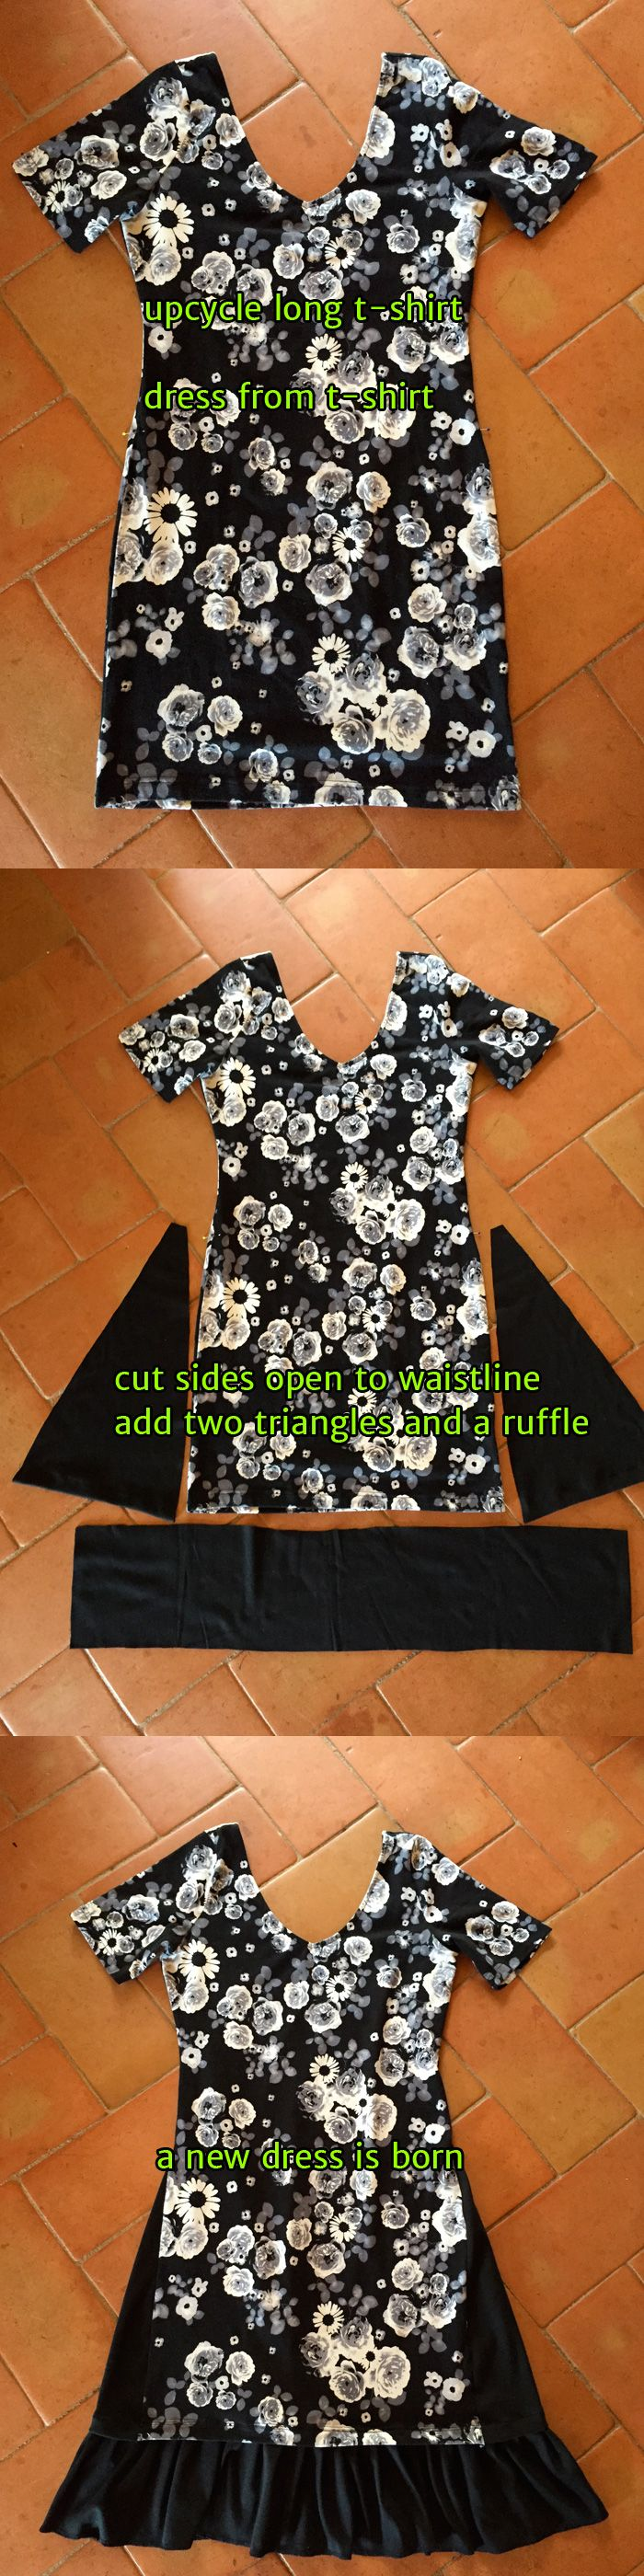 Upcycle t-shirt / dress out of t-shirt: Loved the print of the shirt, bought in sales. But too short and too tight for my age ;-) So I made it into a cute dress